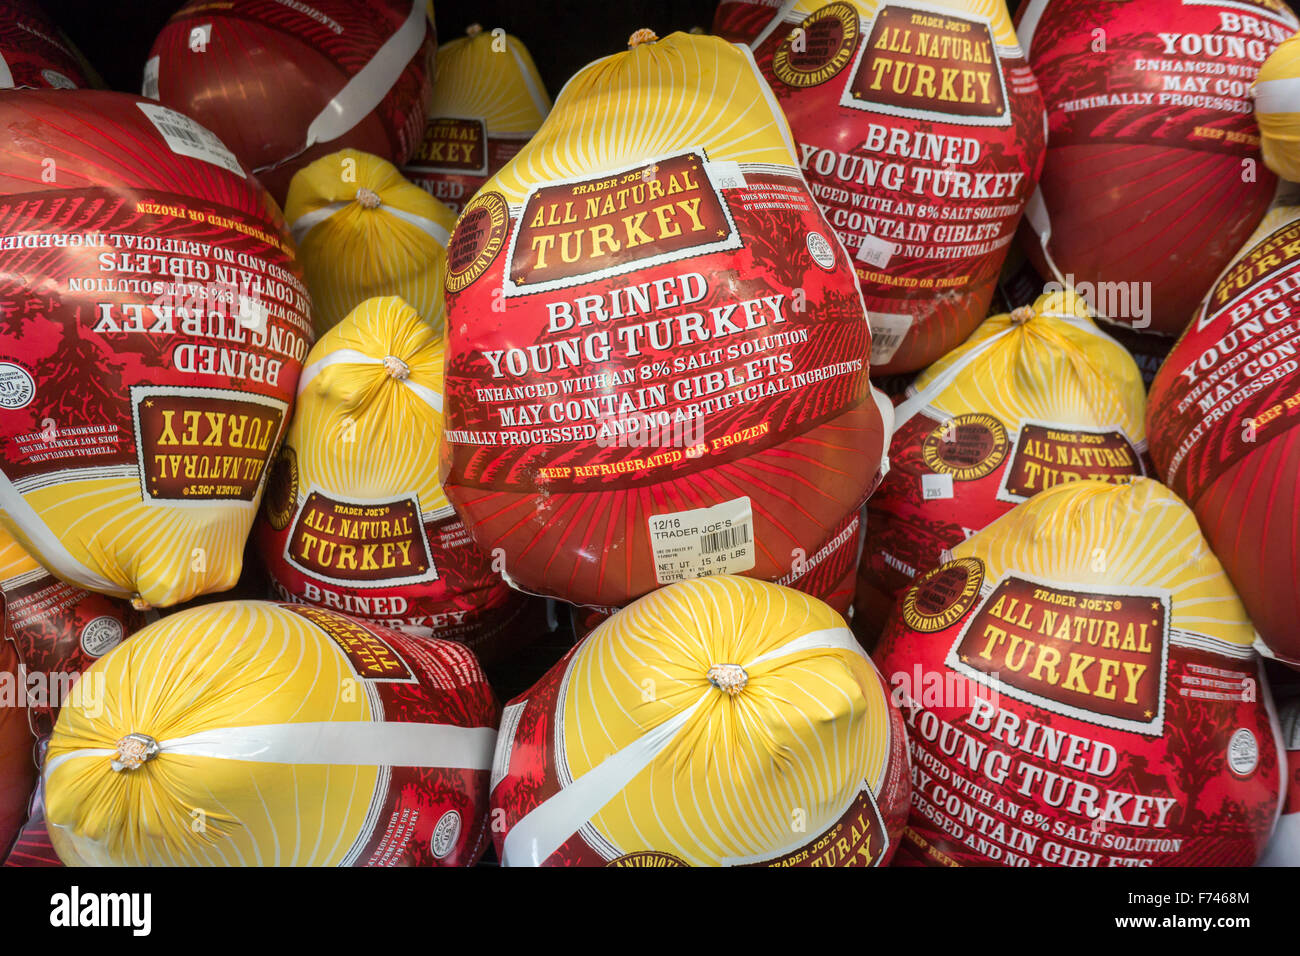 Trader Joe S House Brand Turkeys For Sale In A Trader Joe S Stock Photo Alamy